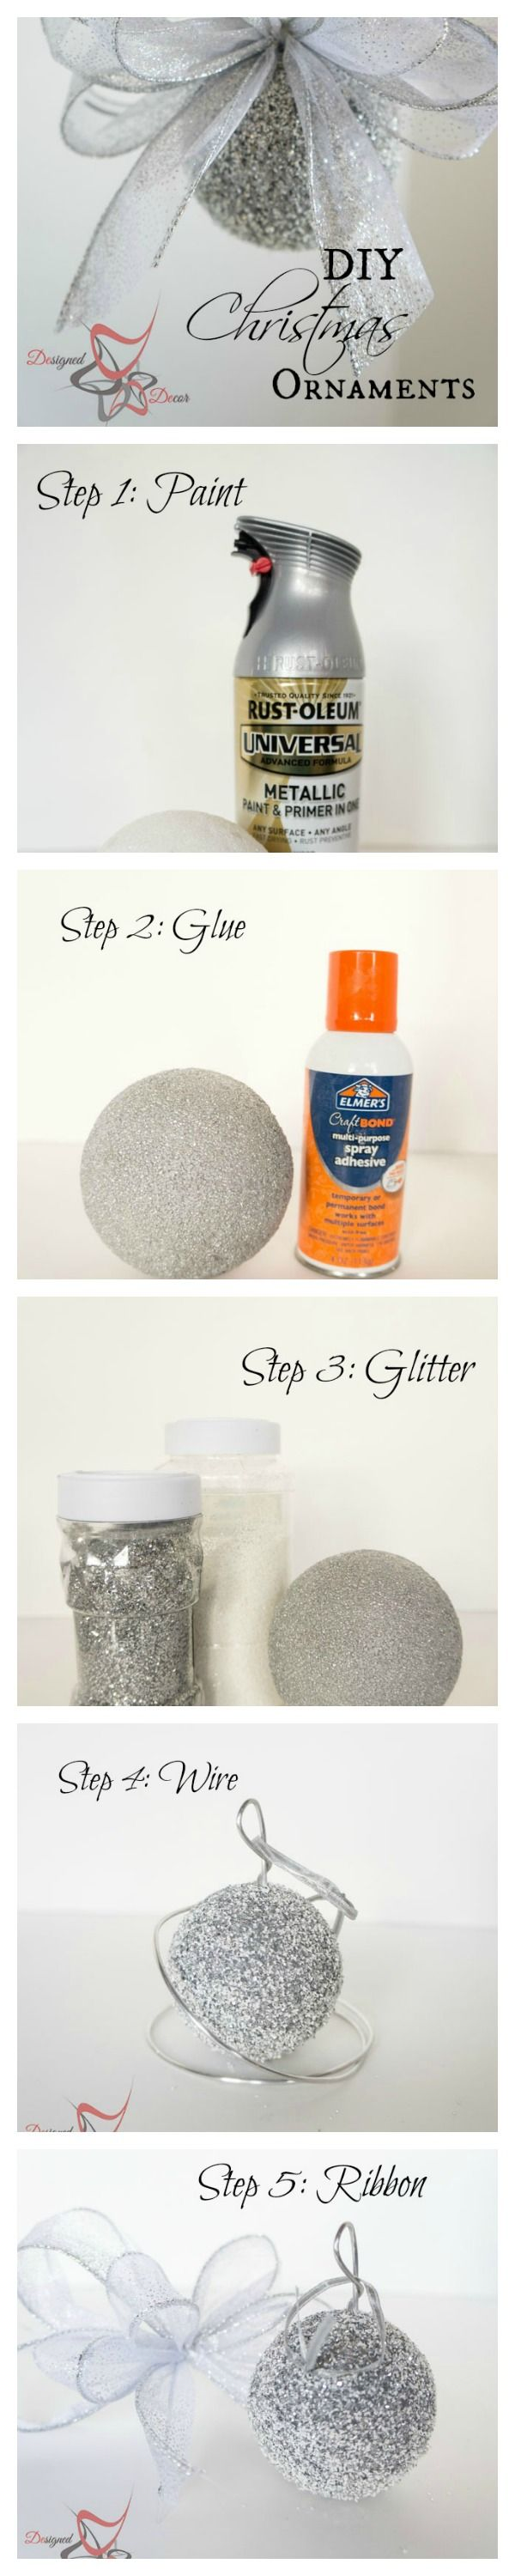 DIY- Styrofoam -Ball-Glitter-Ornaments- Christmas-www.designeddecor.com